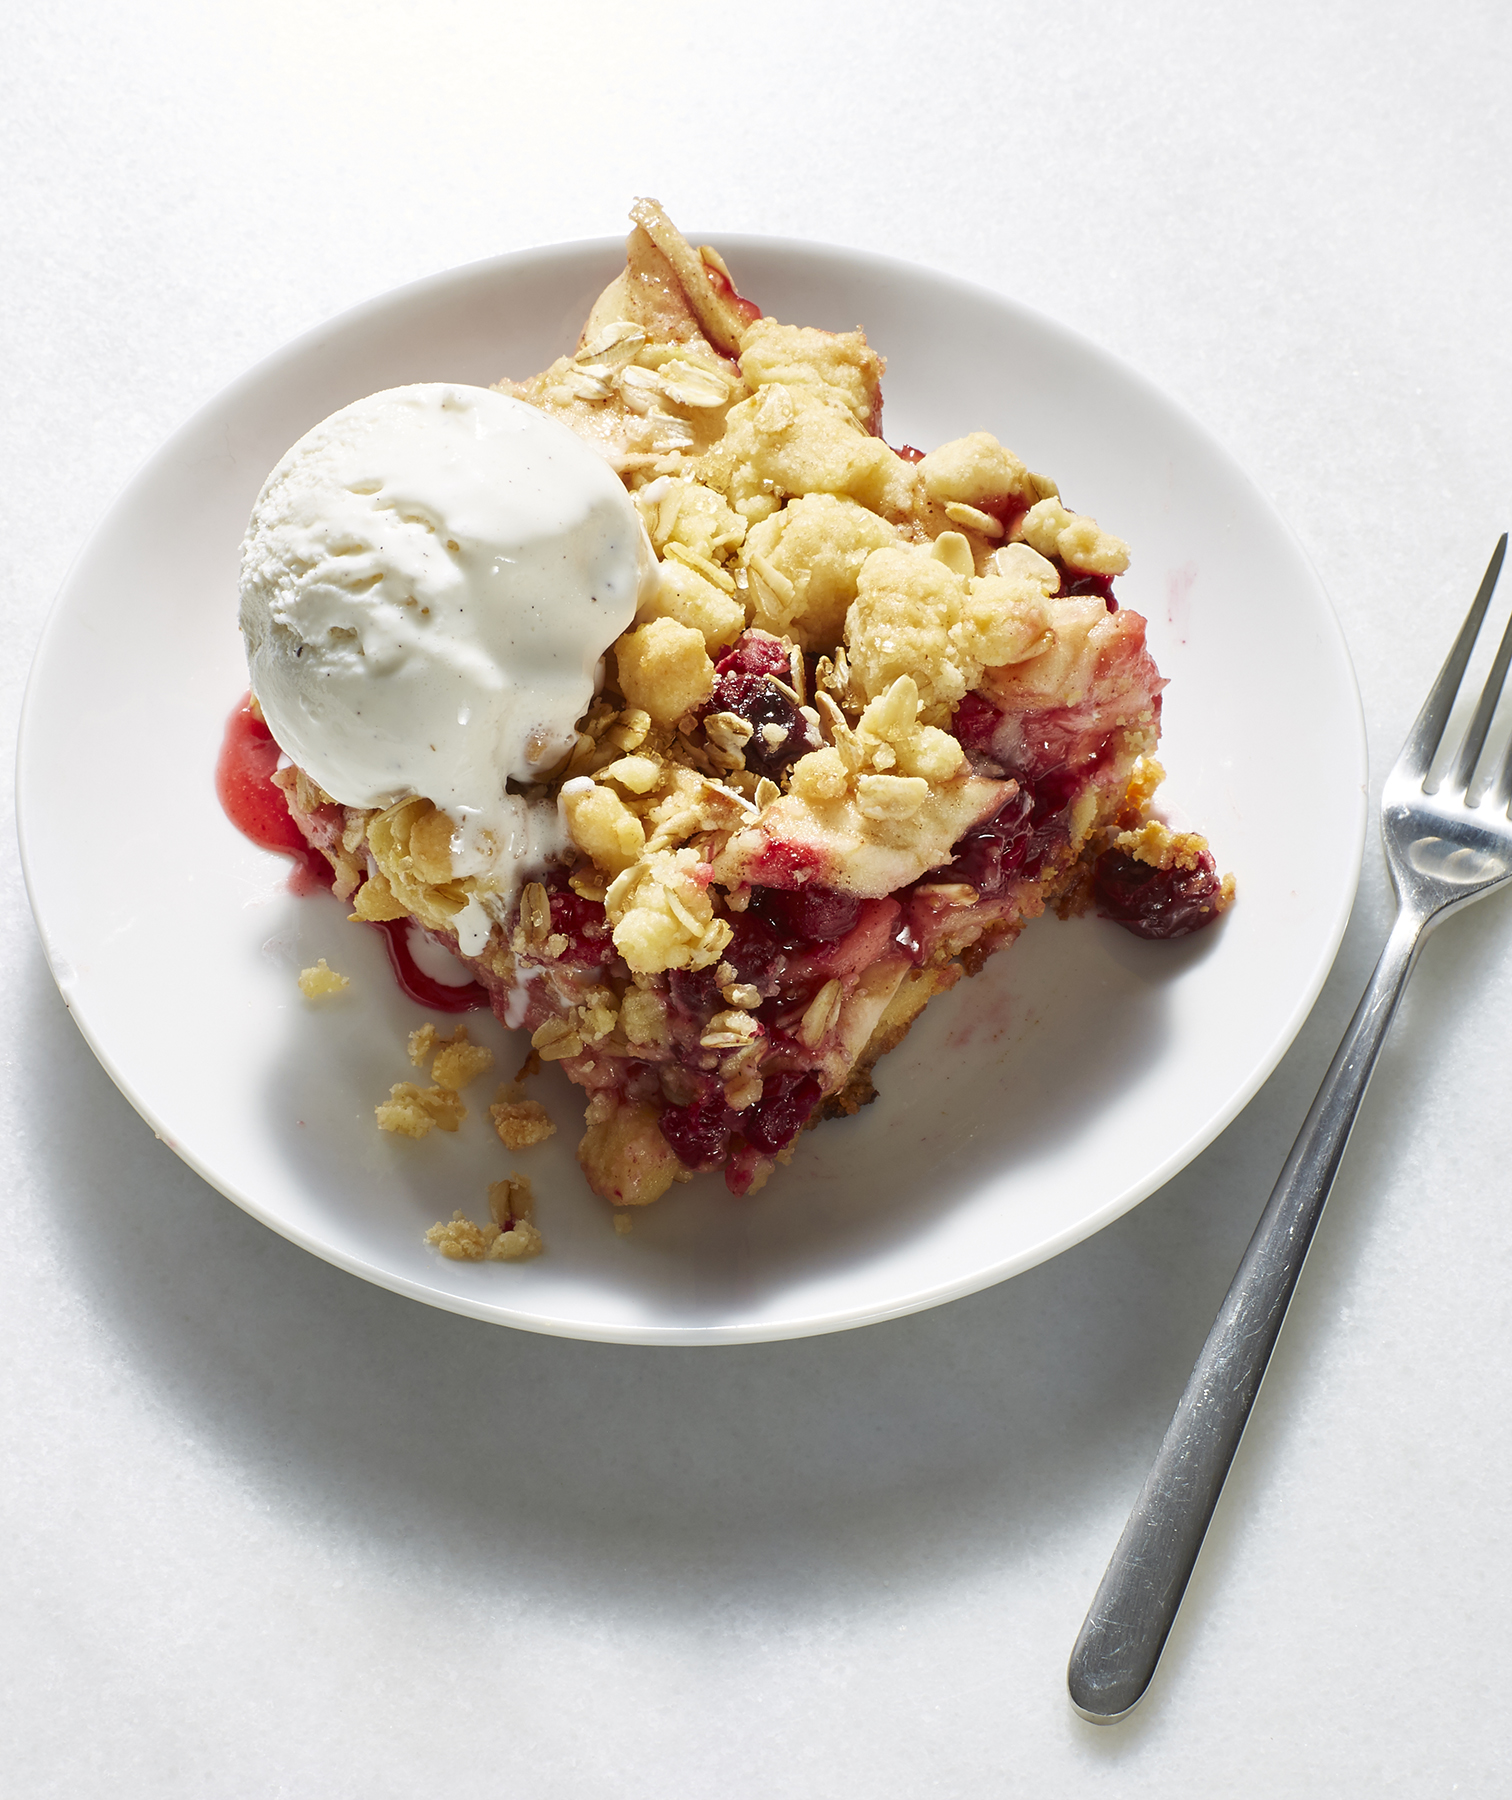 Cran-Apple Pie Bars With Oat Crumble